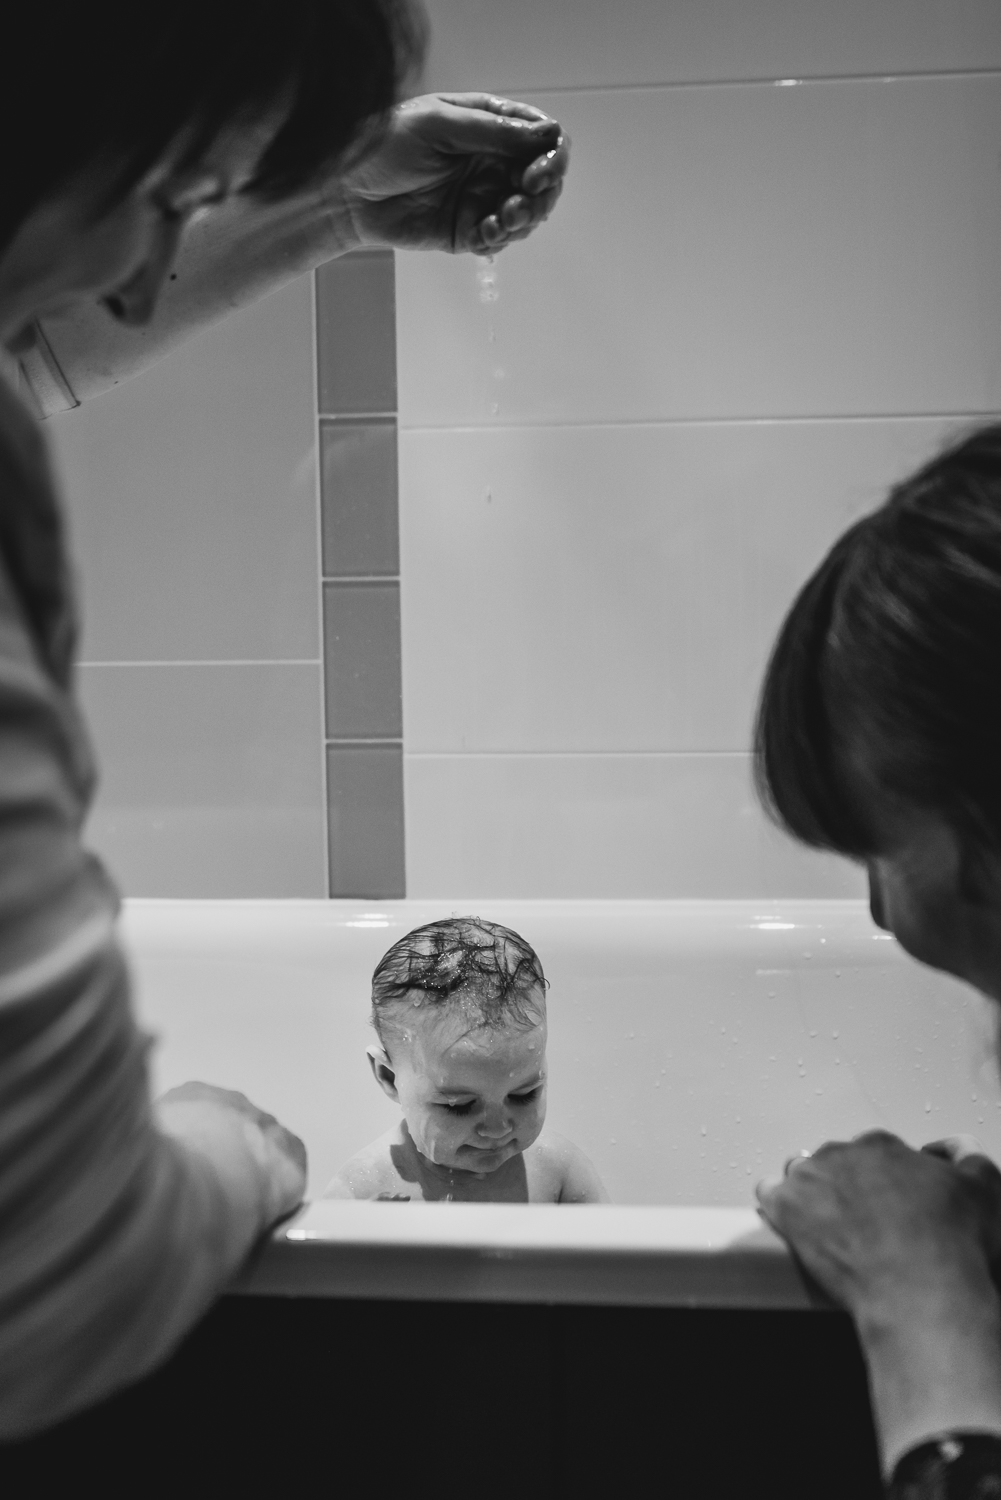 Bathtime routine captured during a documentary family photoshoot